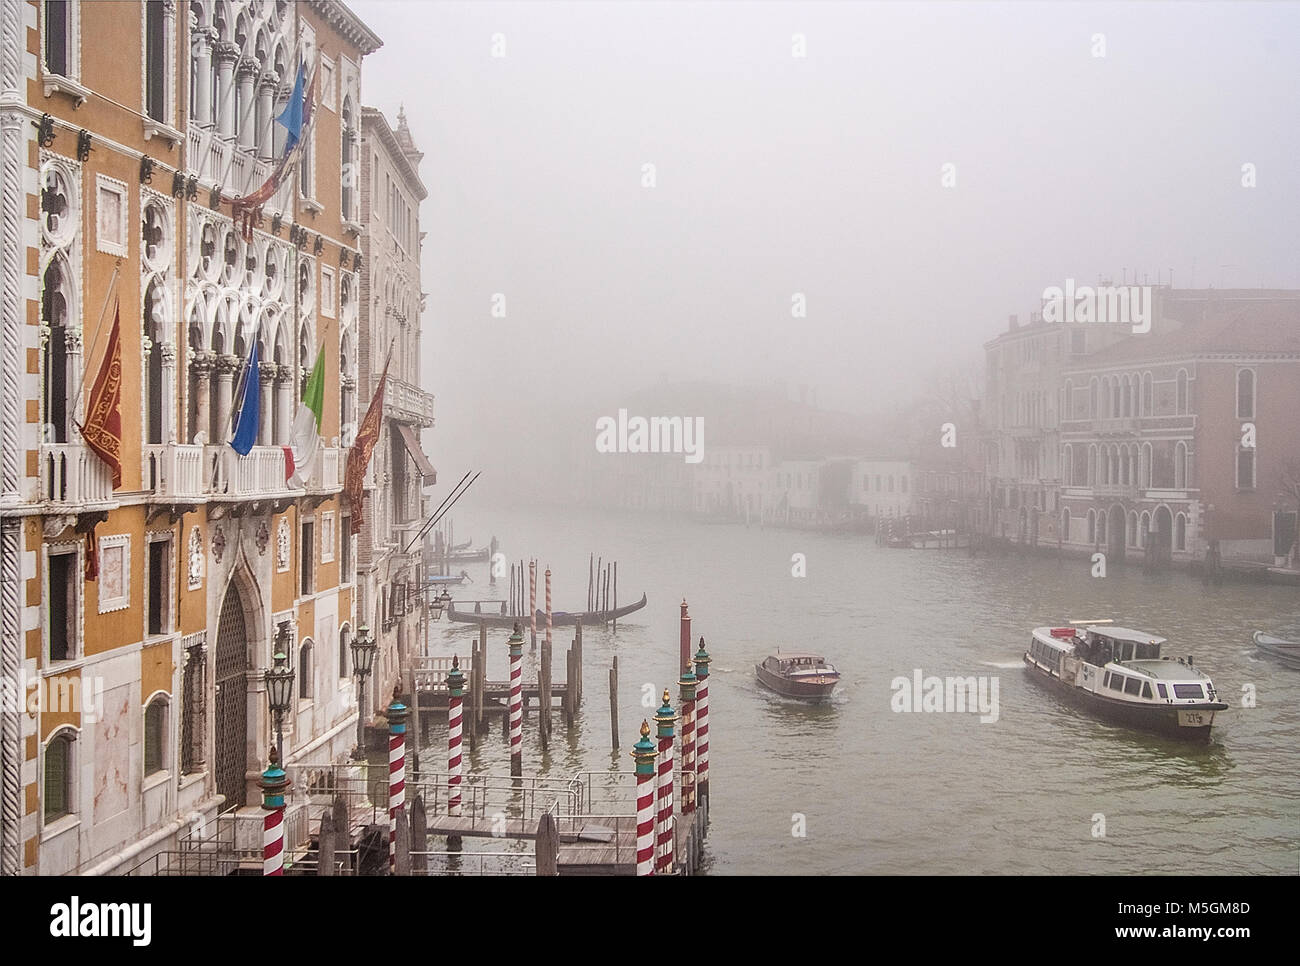 Venice,Gran Canal View - Stock Image